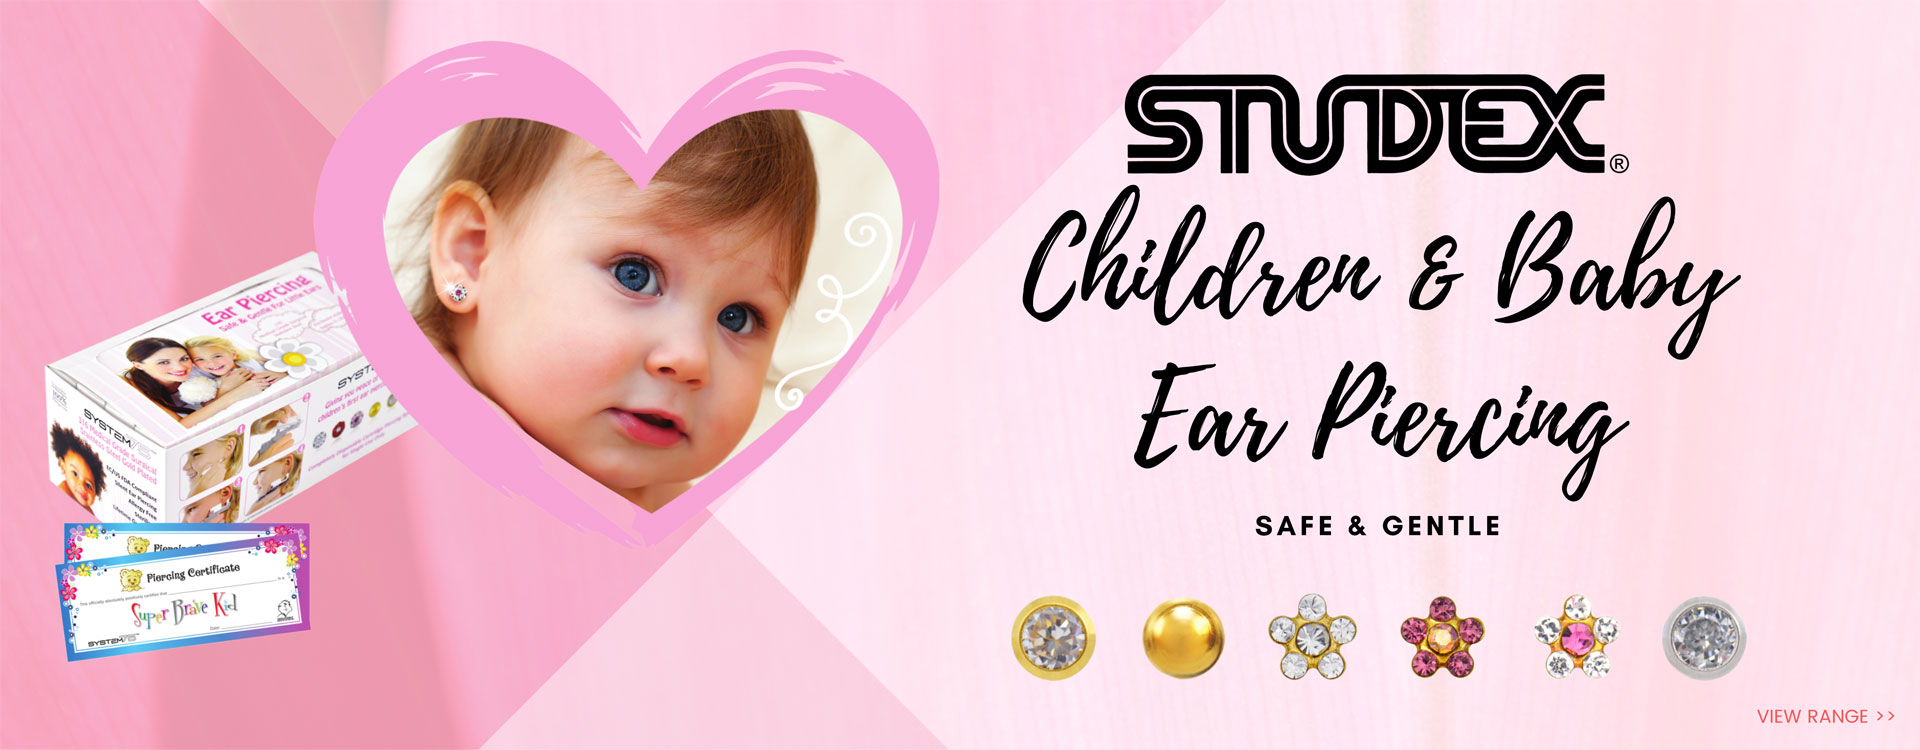 BABY-SYS75-1920x750 Distributor of Studex Ear Piercing, Toys, Jewellery, Beauty Products - Adnohr